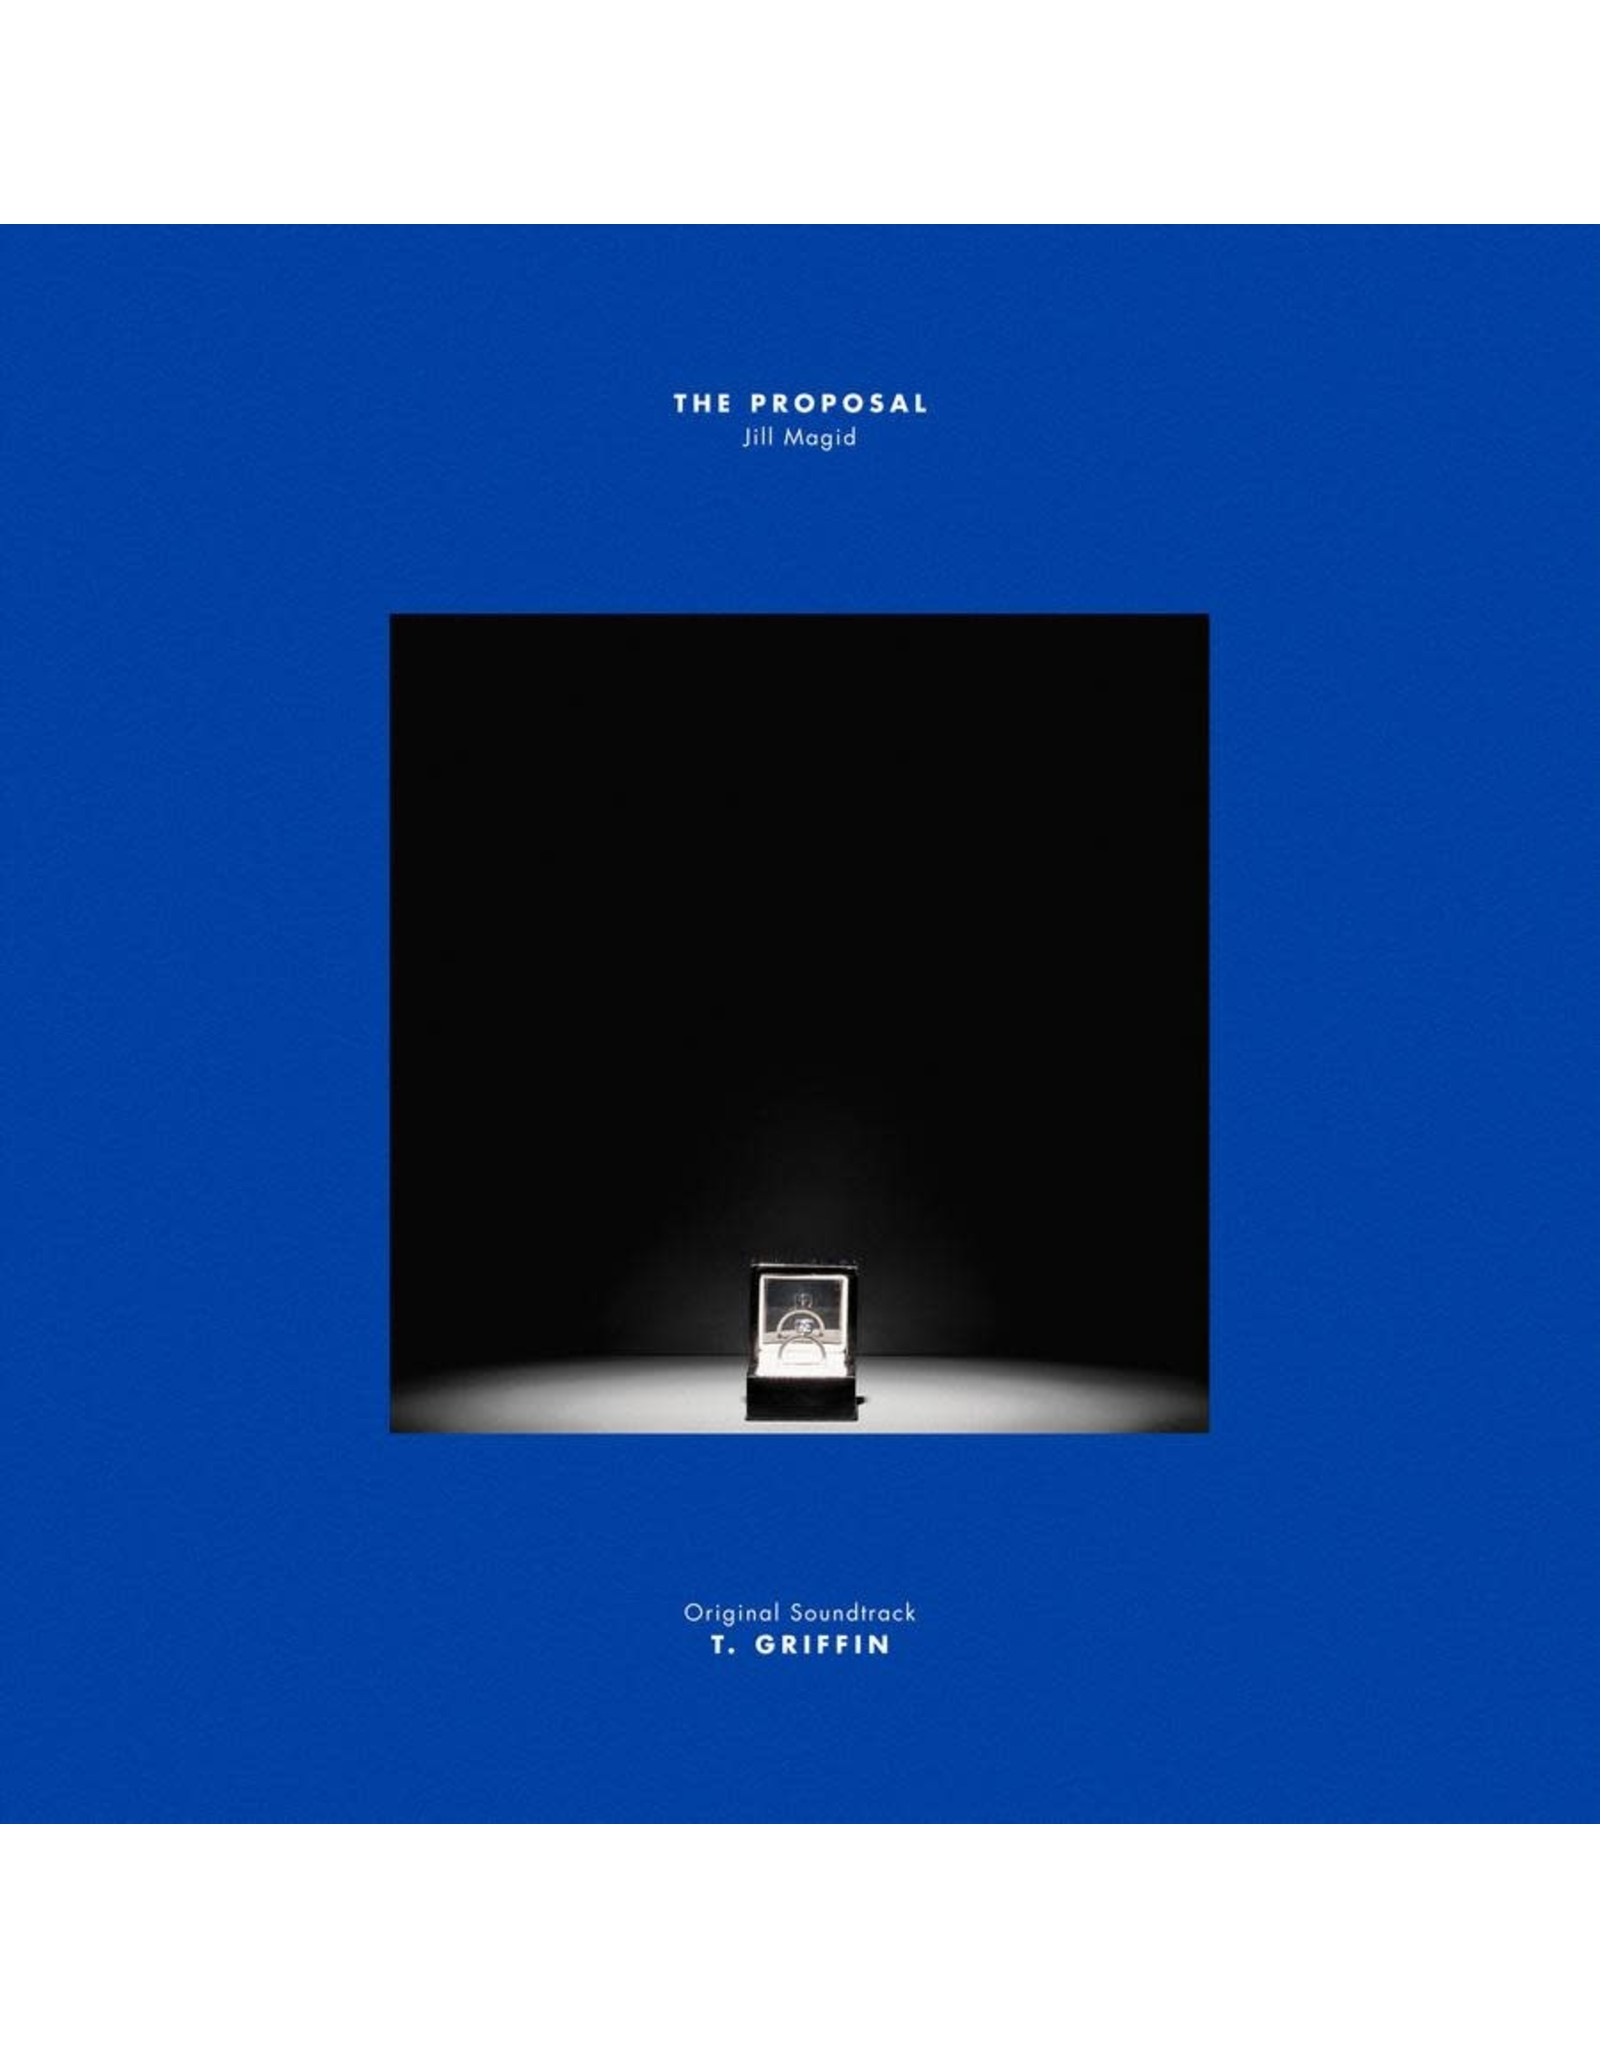 Constellation Griffin, T.: The Proposal LP